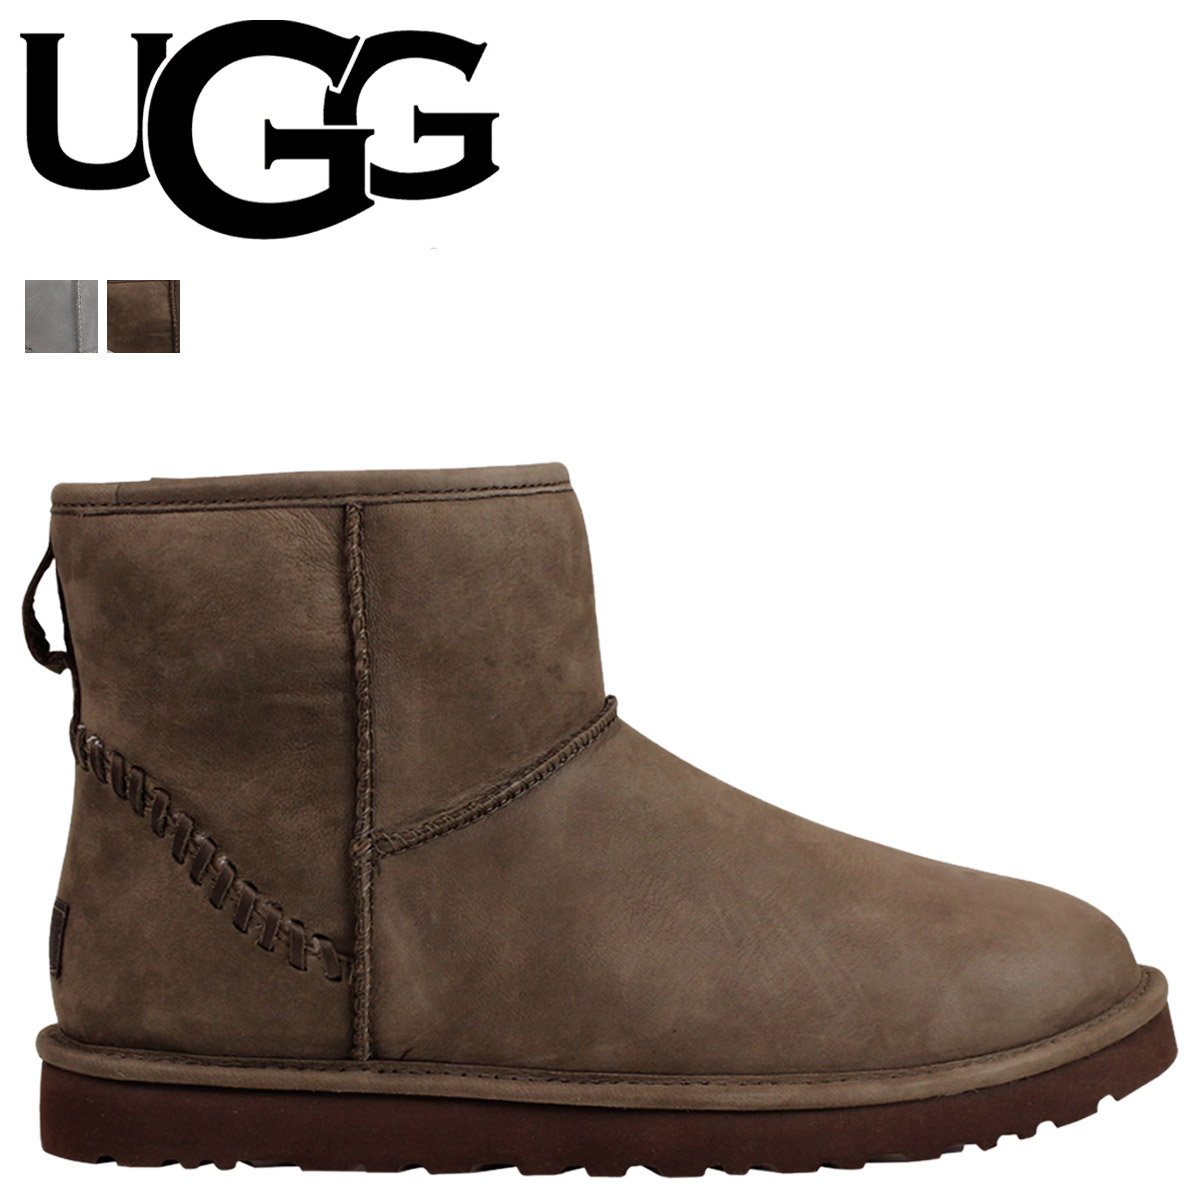 62efd7419bf UGG UGG men's MENS CLASSIC MINI DECO CAPRA Sheepskin Boots Classic mini  Deco Capra 1009687 2 color [9/30 new in stock]